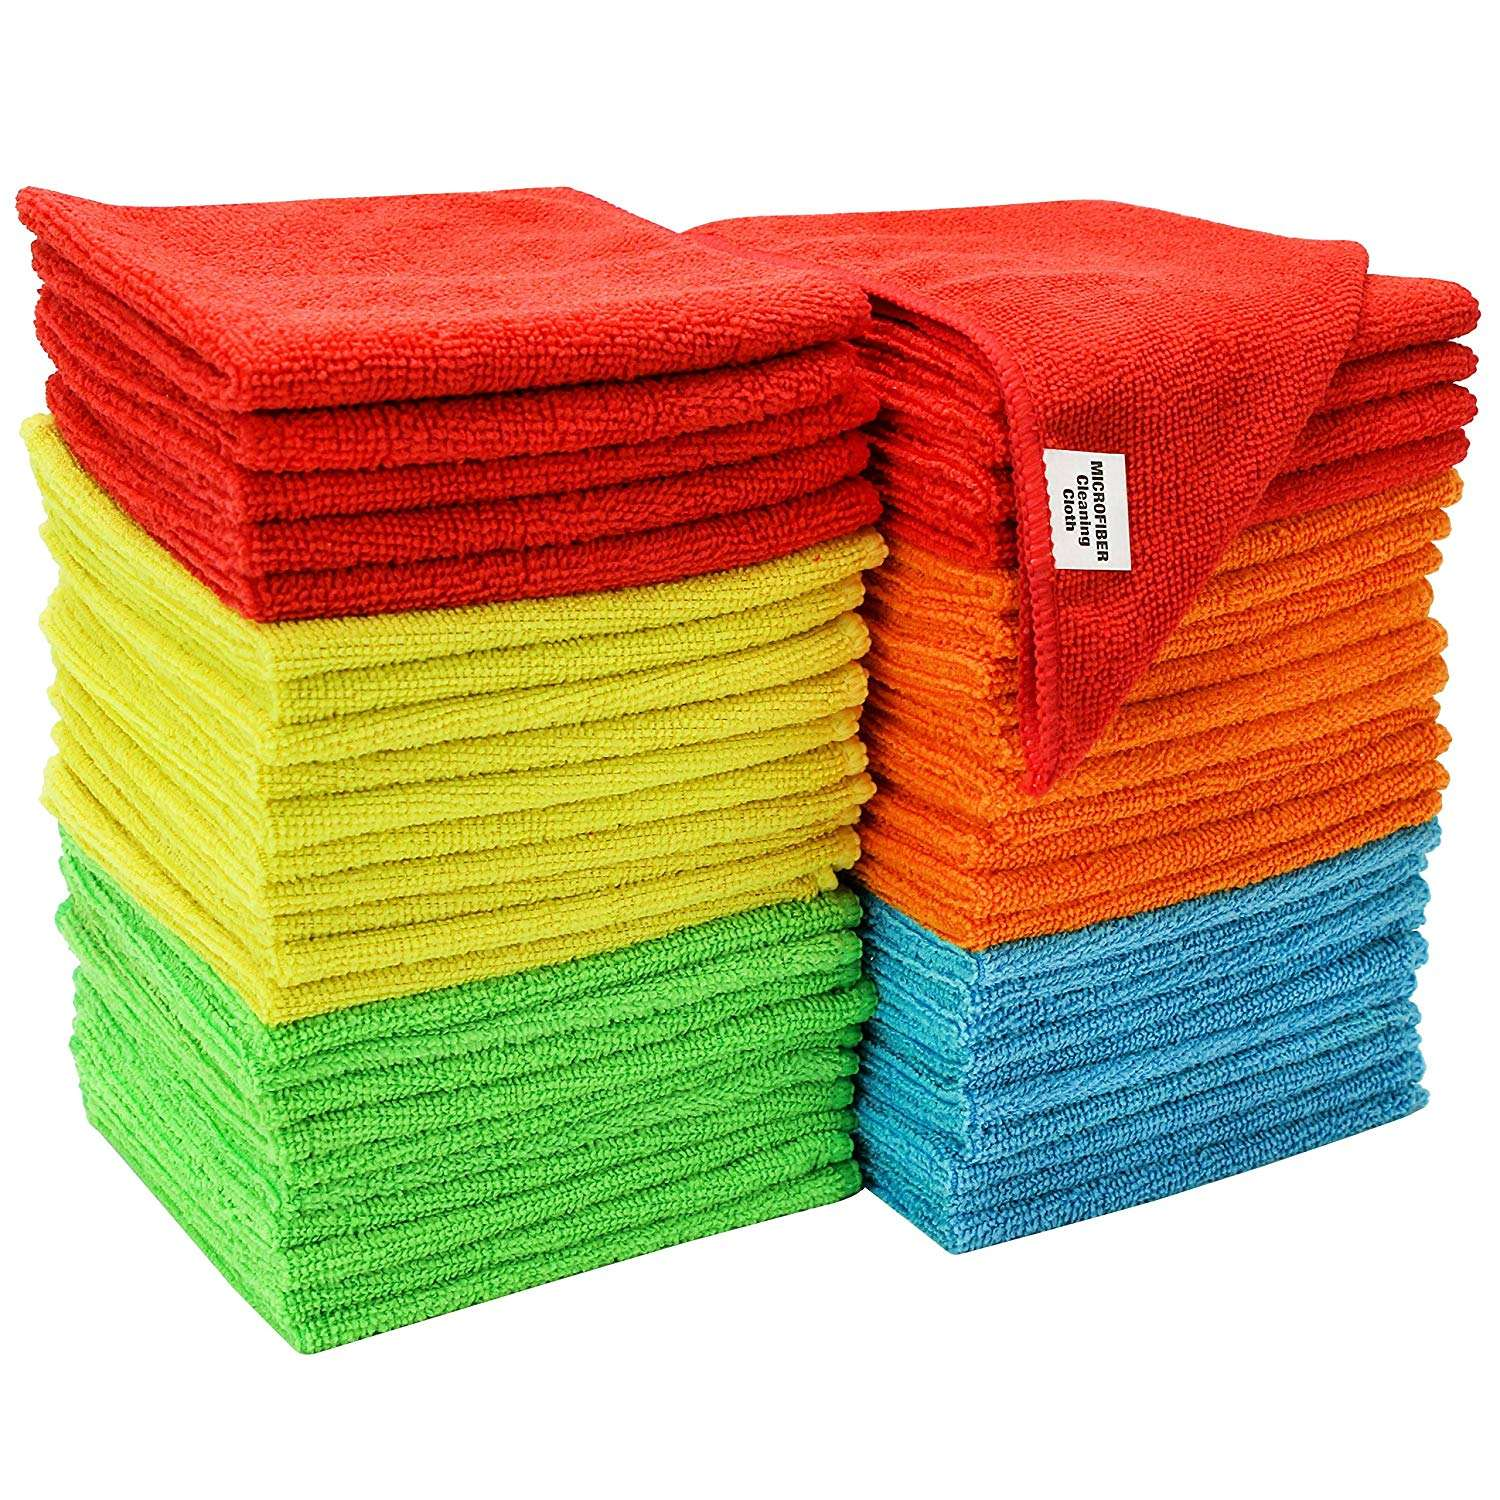 Assorted Microfiber Cleaning Cloth Car Wash Cloth Chemical Free Kitchen Towel, Clean Windows & Cars 30*30cm,240gsm